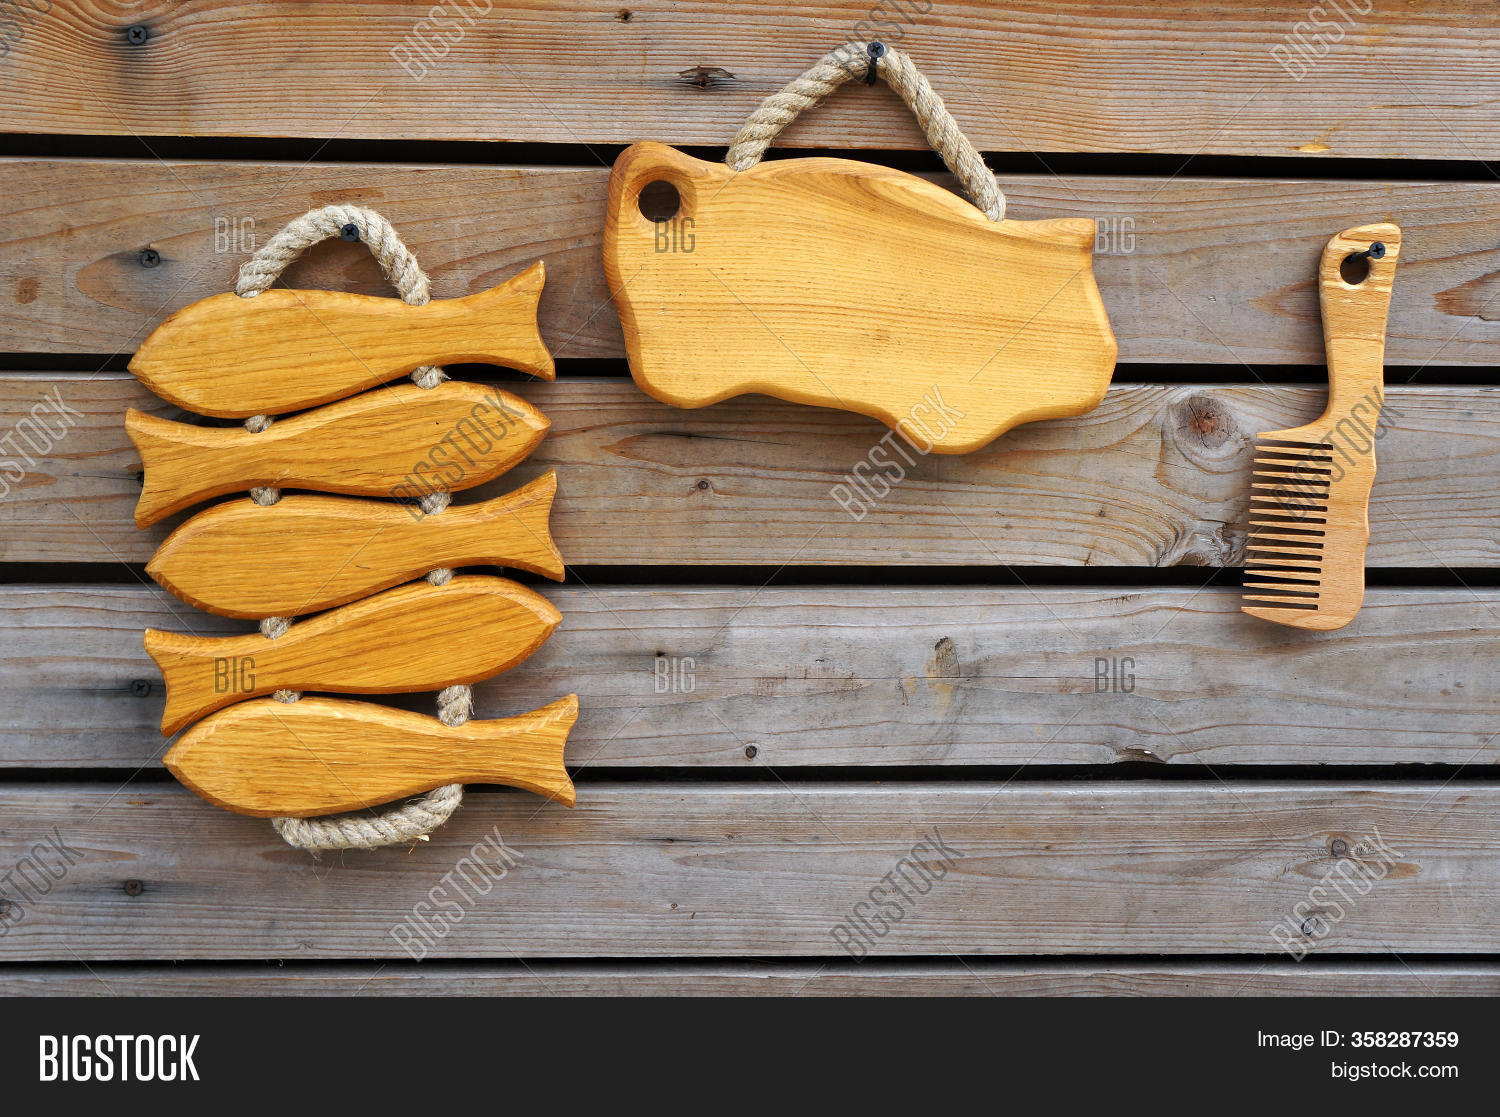 Handicraft Wooden Image Photo Free Trial Bigstock